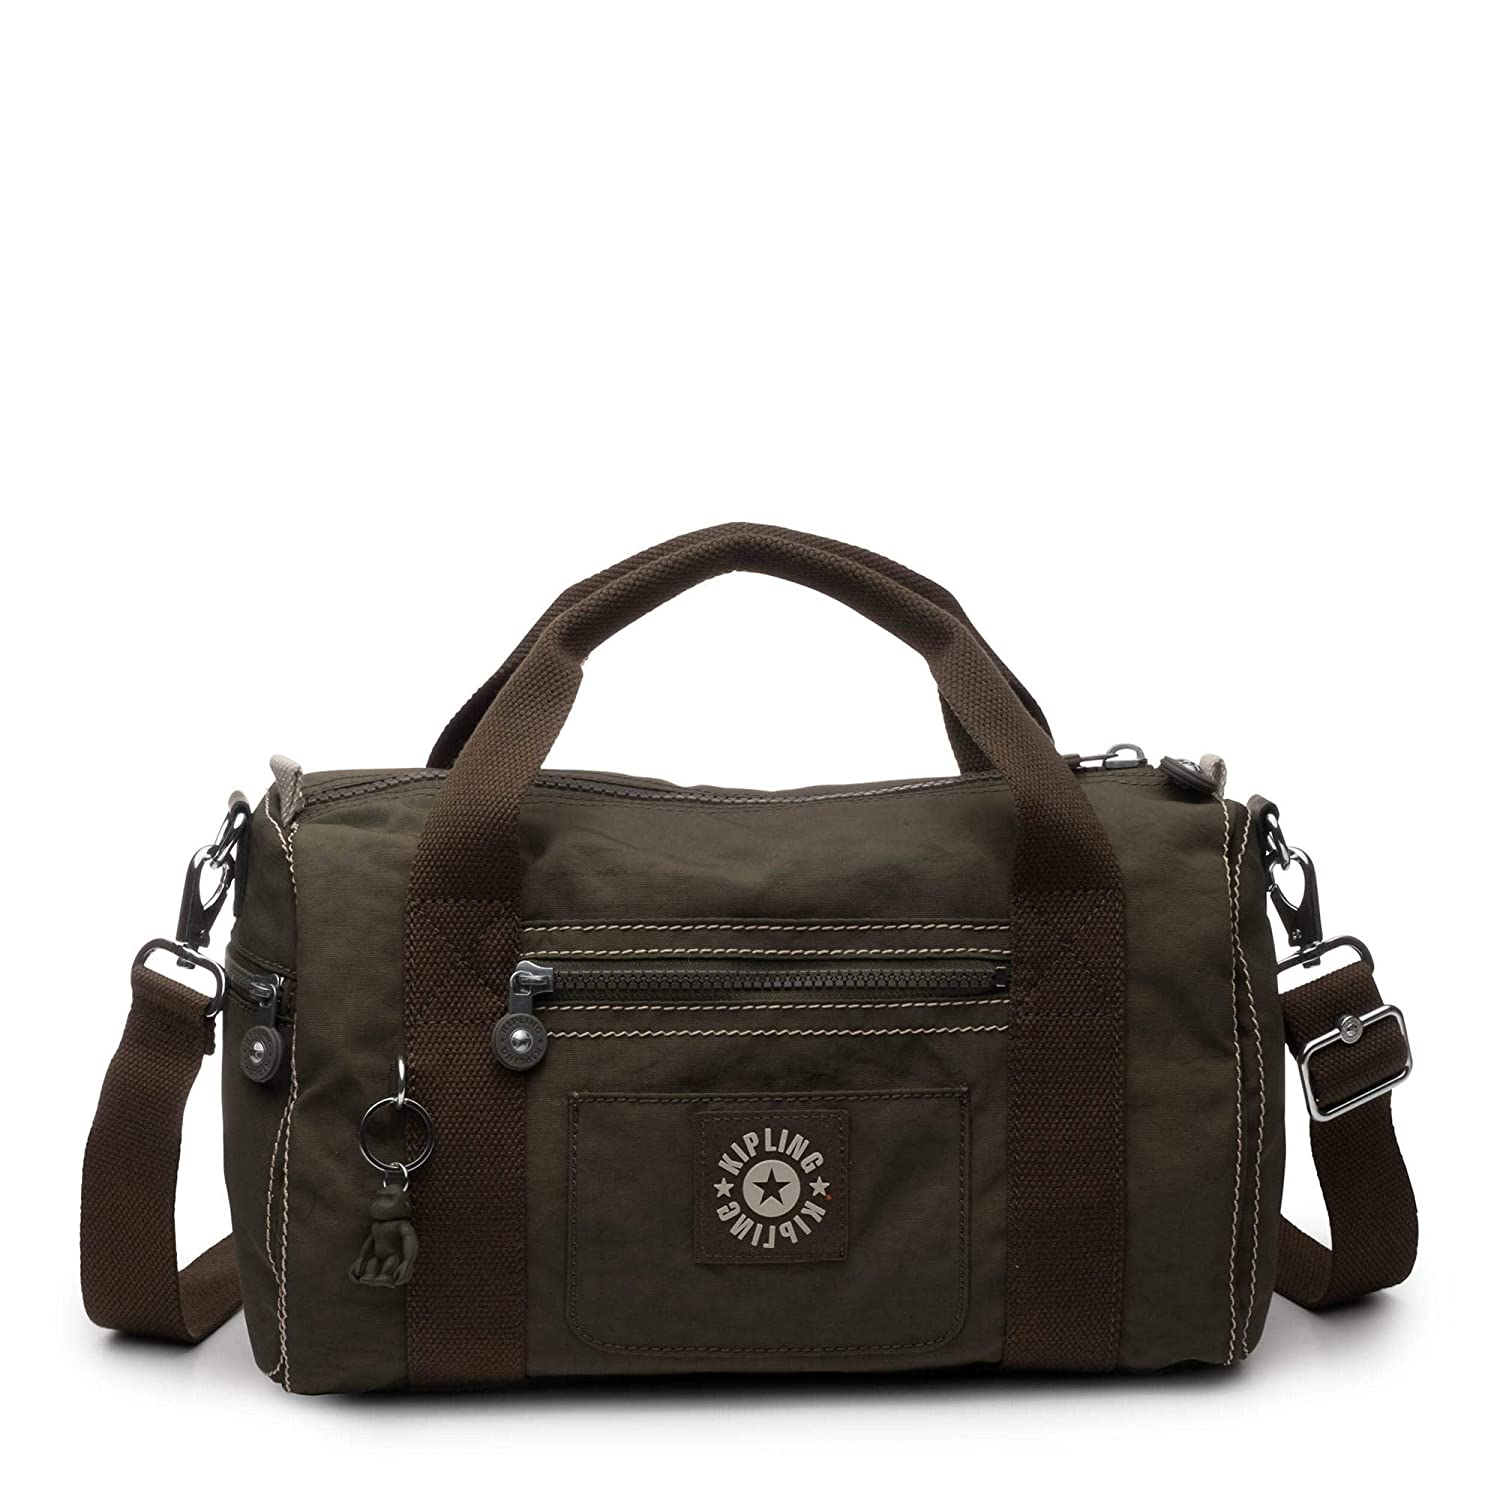 Kipling Tag Along Duffle, Essential Travel Bag, Multi Pocket, Zip Closure